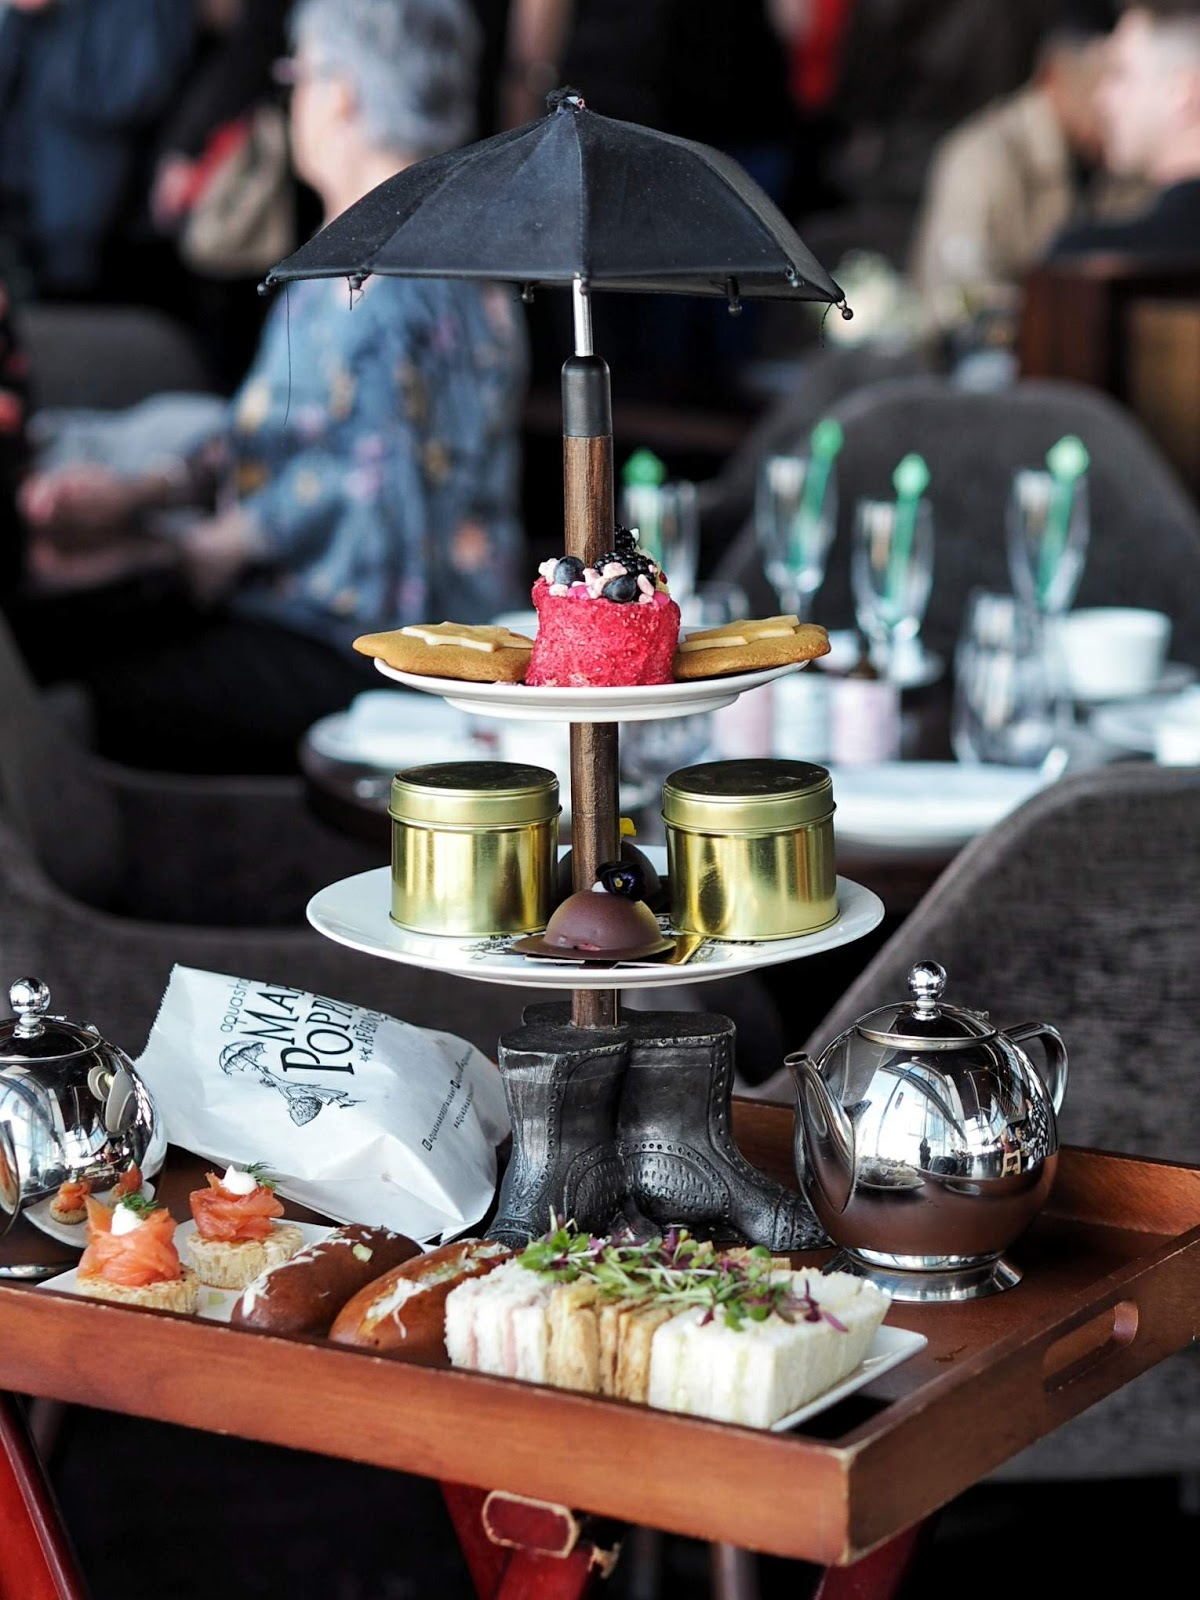 Just A Spoonful of Sugar: The Mary Poppins Afternoon Tea at